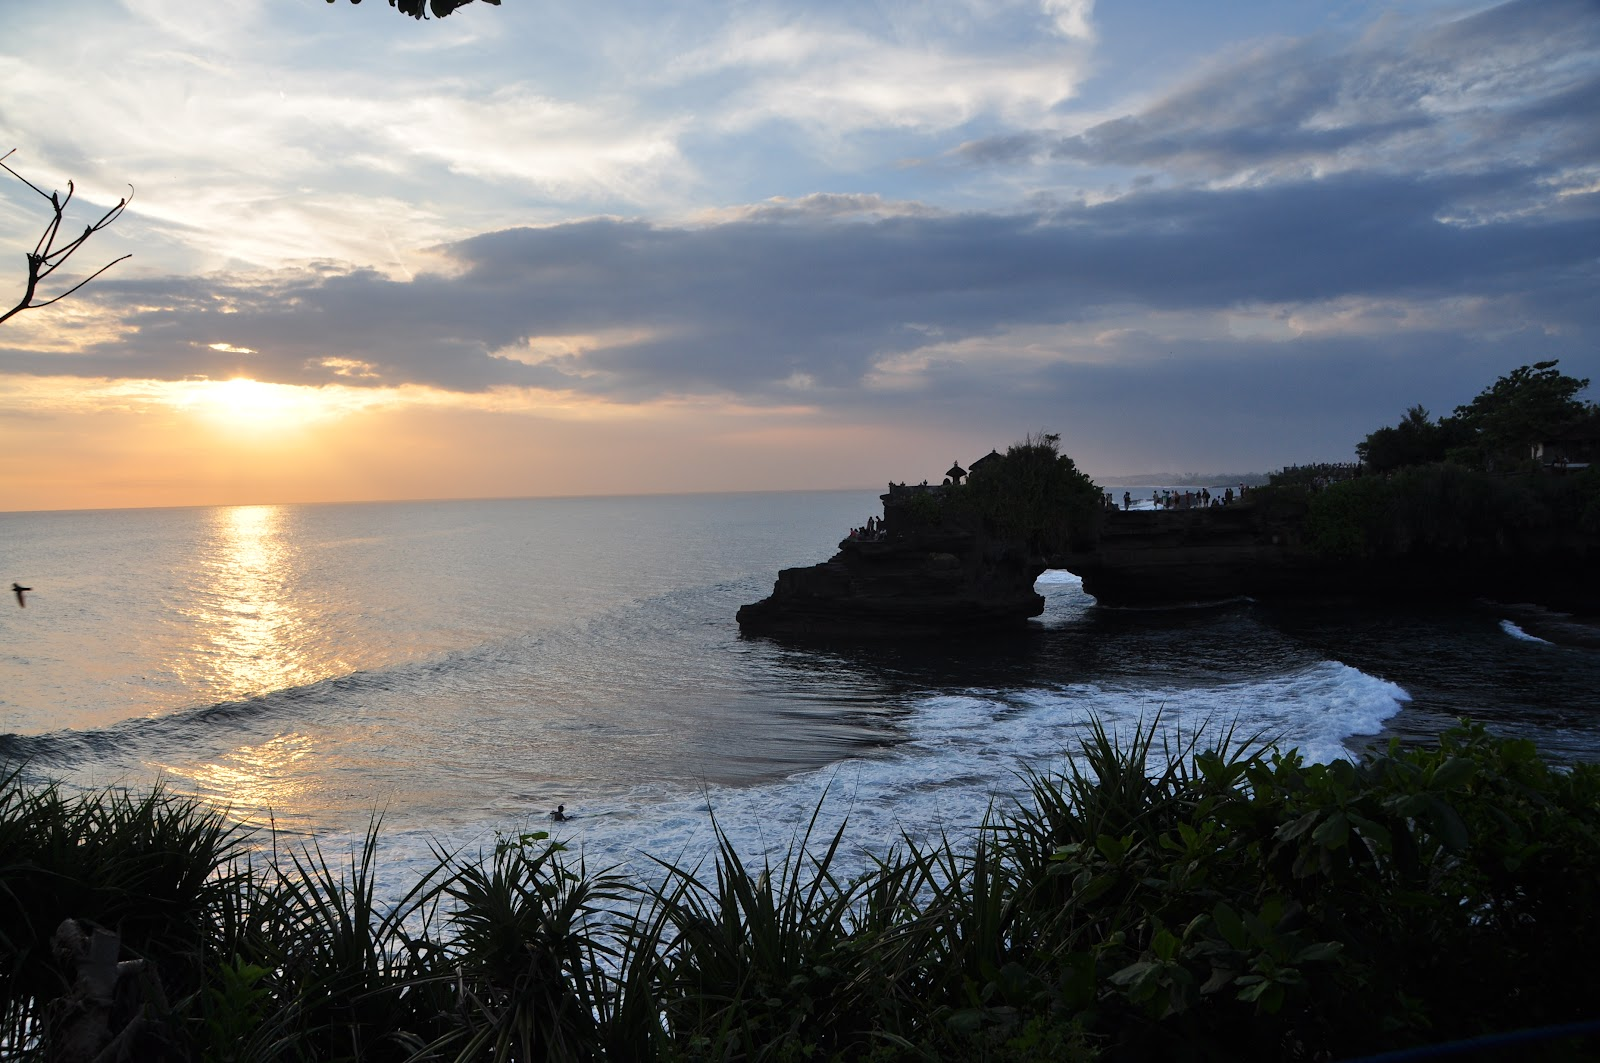 tanah lot buddhist temple next to ocean during sunset